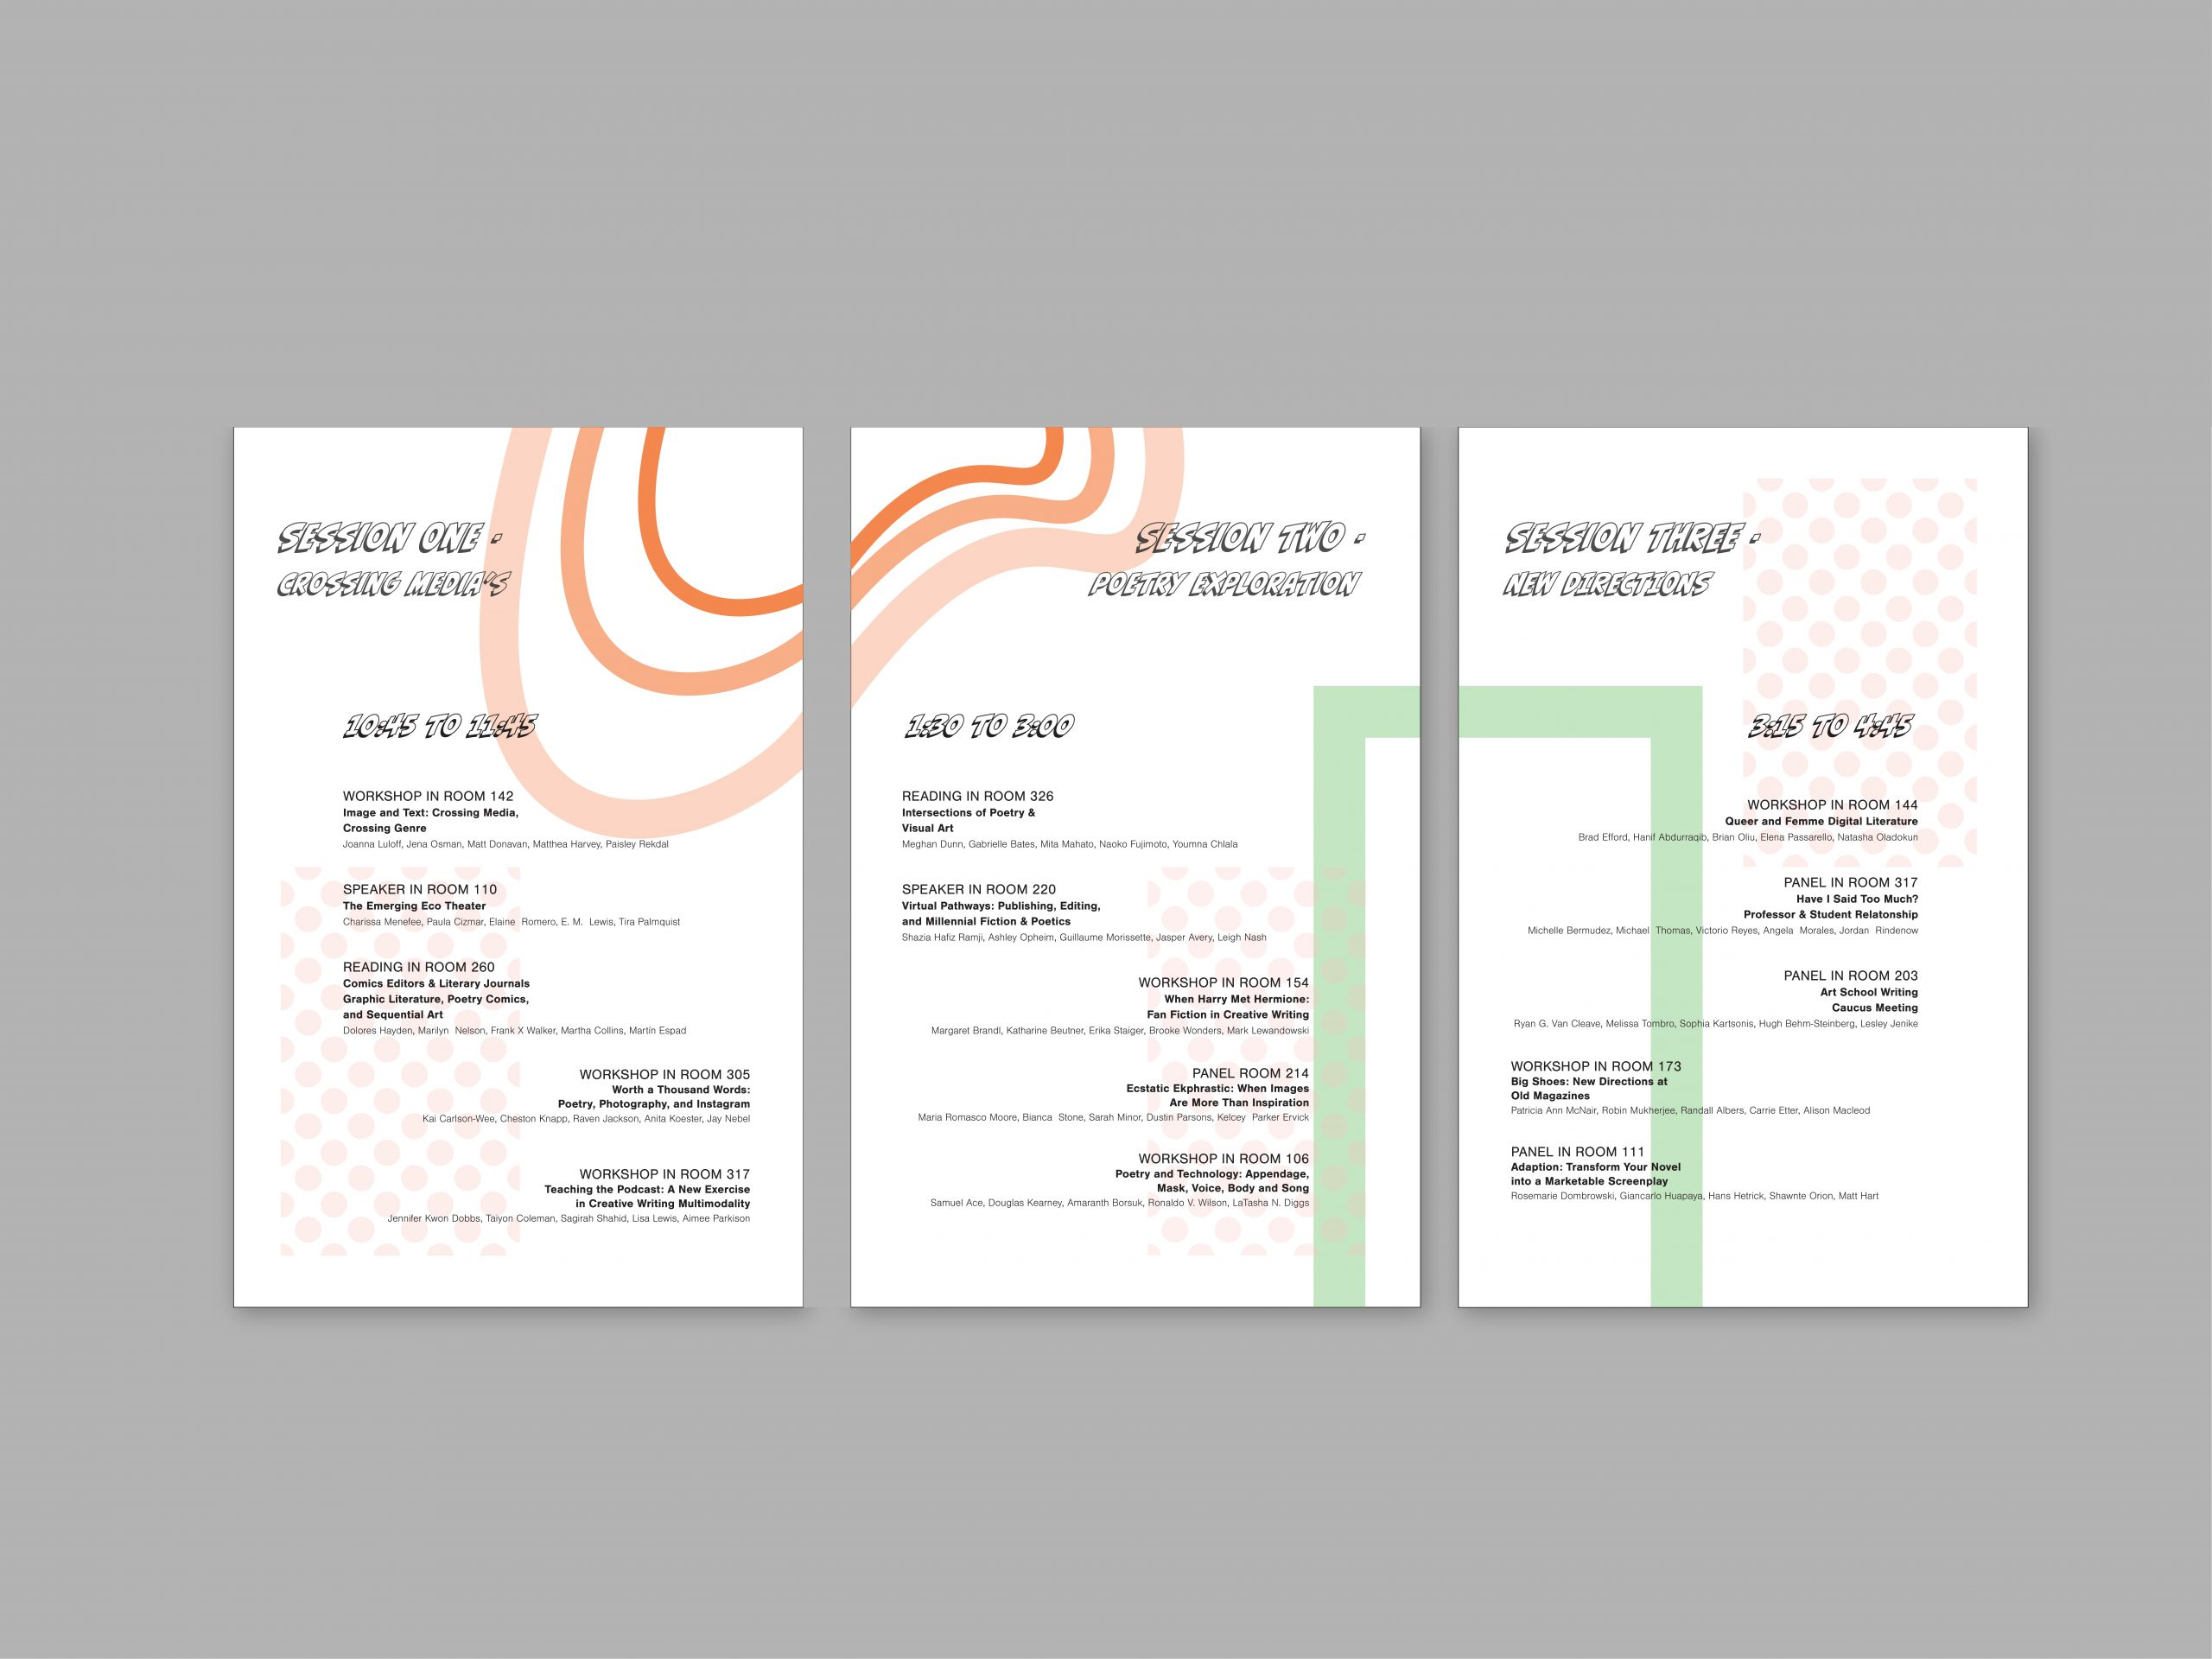 Miranda Duea's three session posters for AWP conference design